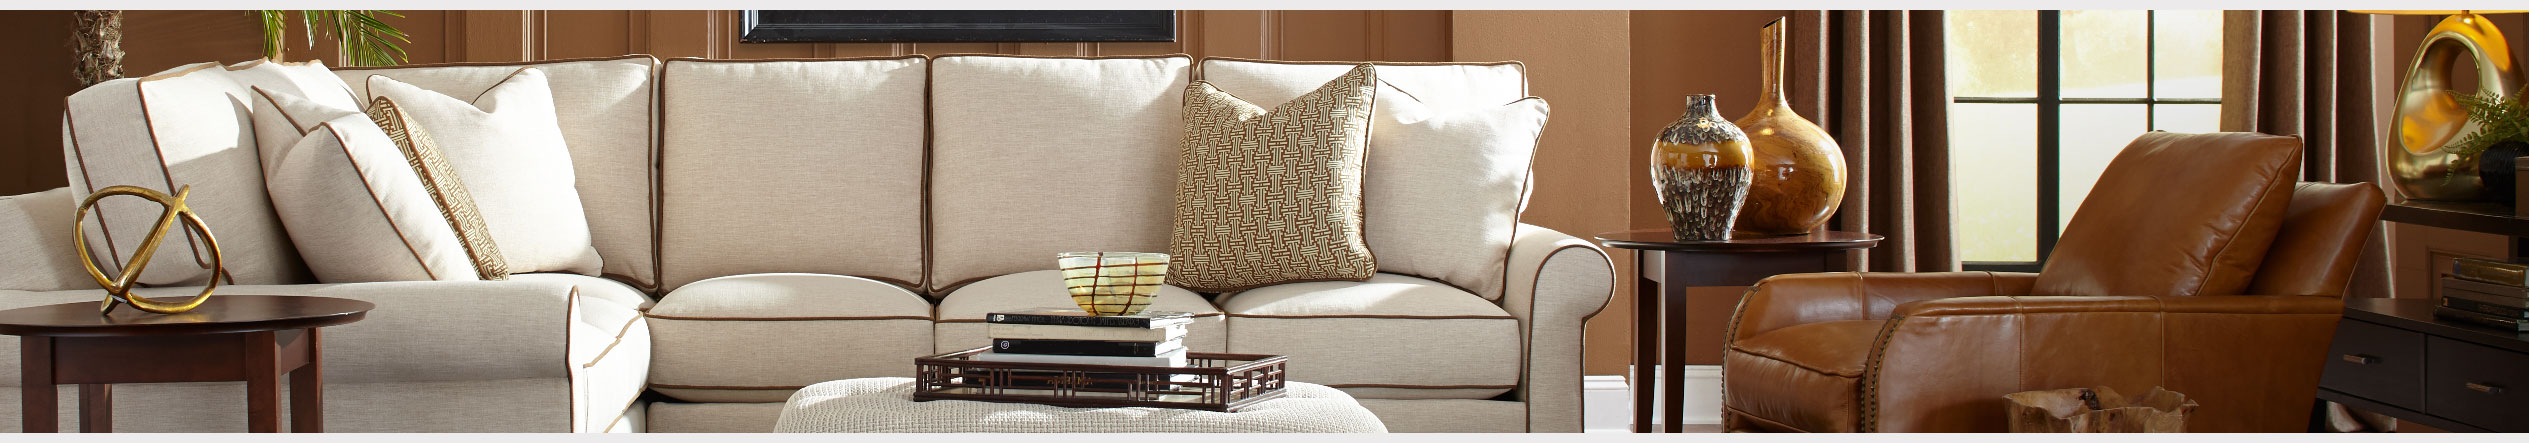 In Home Design at Jordan's Furniture stores in CT, MA, NH, and RI